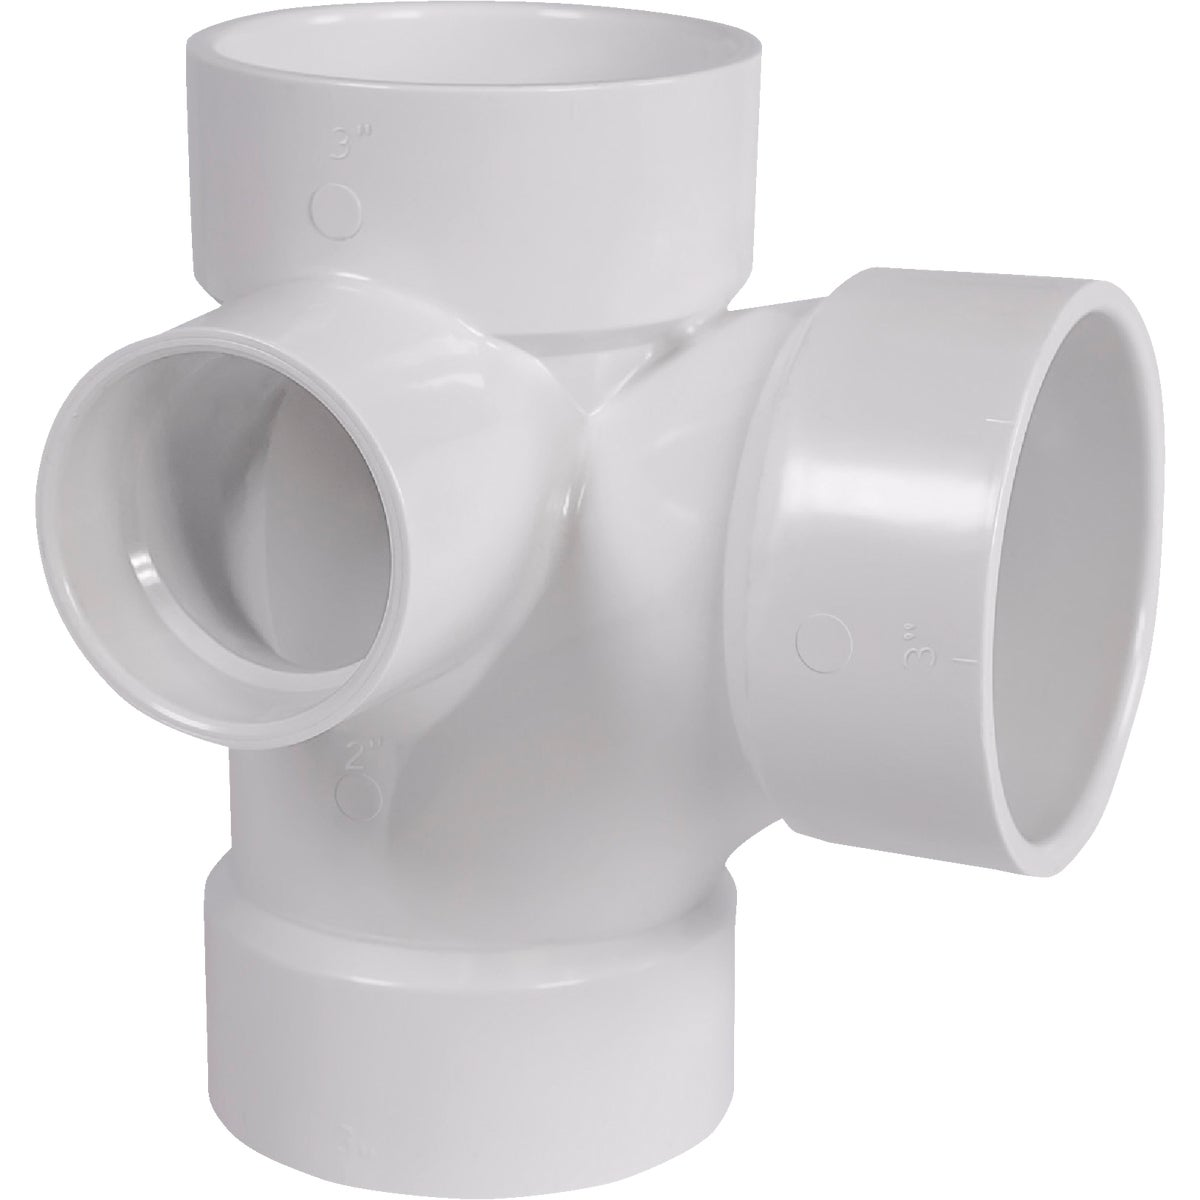 3X3X3X2 SIDE INL PVC TEE - 77132 by Genova Inc  Pvc Dwv